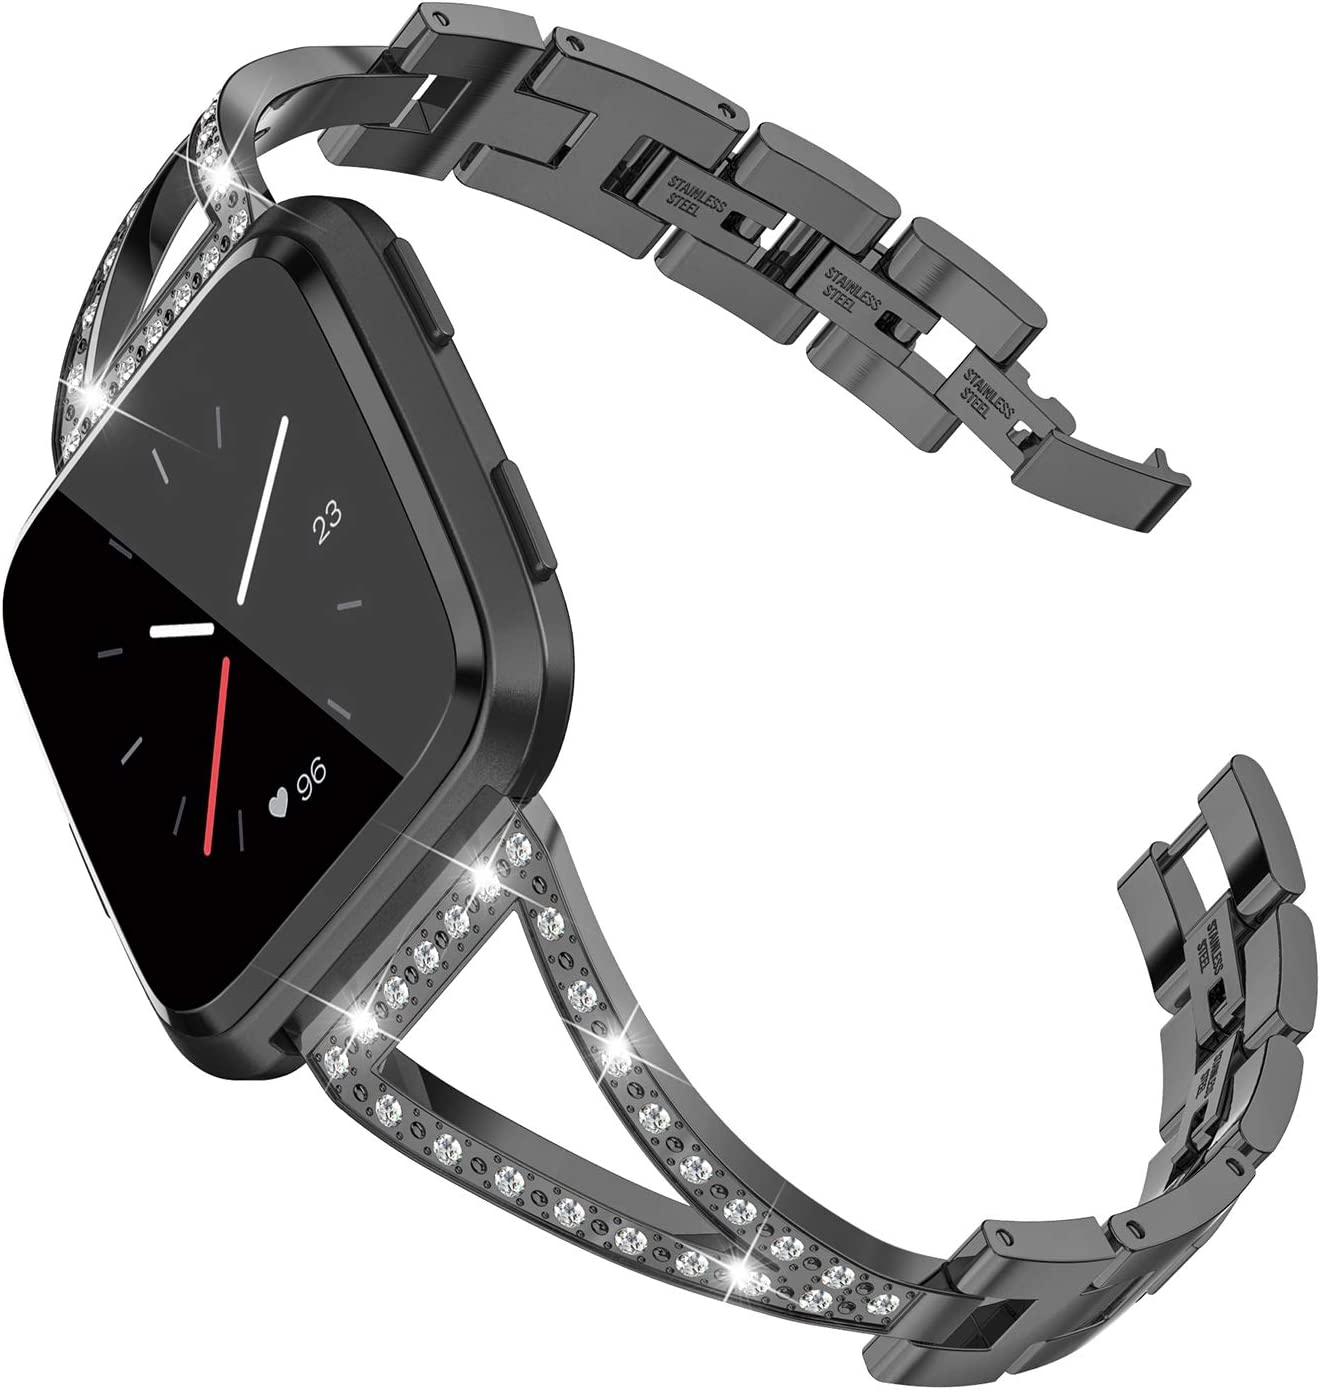 Wearlizer Dressy Bracelet Compatible with Fitbit Versa Bands for Women 3 Colors Available Stainless Steel Versa Bands Small Large Strap Accessories Band Replacement Bracelet for Fitbit Versa Band